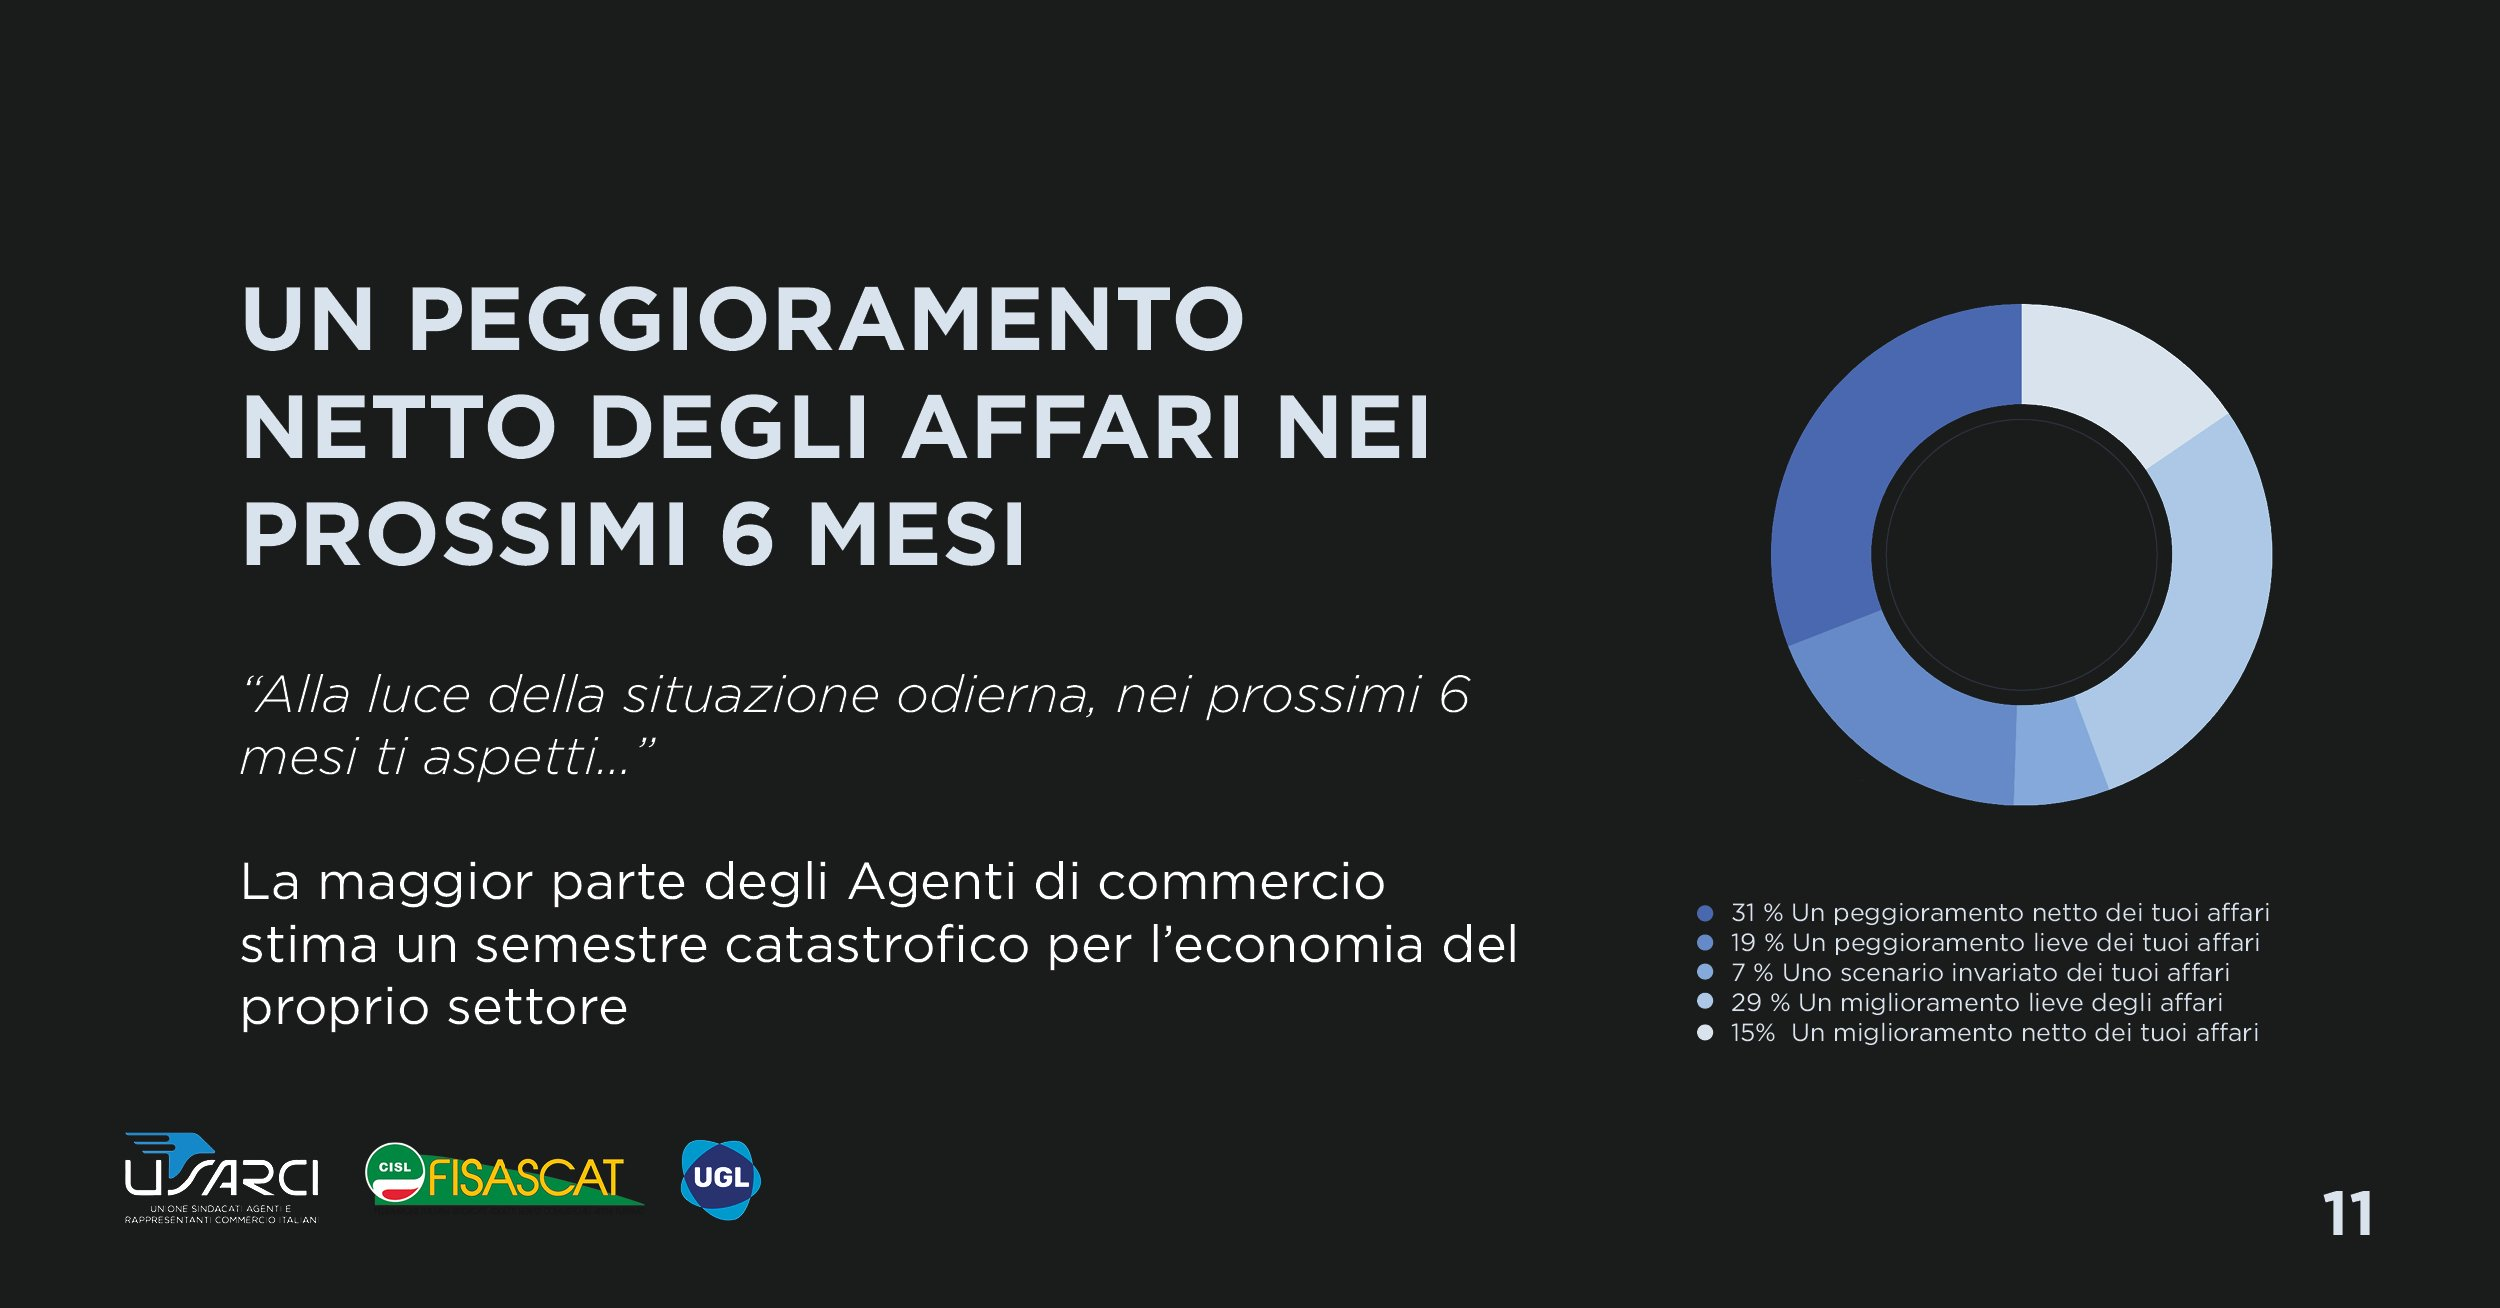 Presentazione questionario_FB Post13